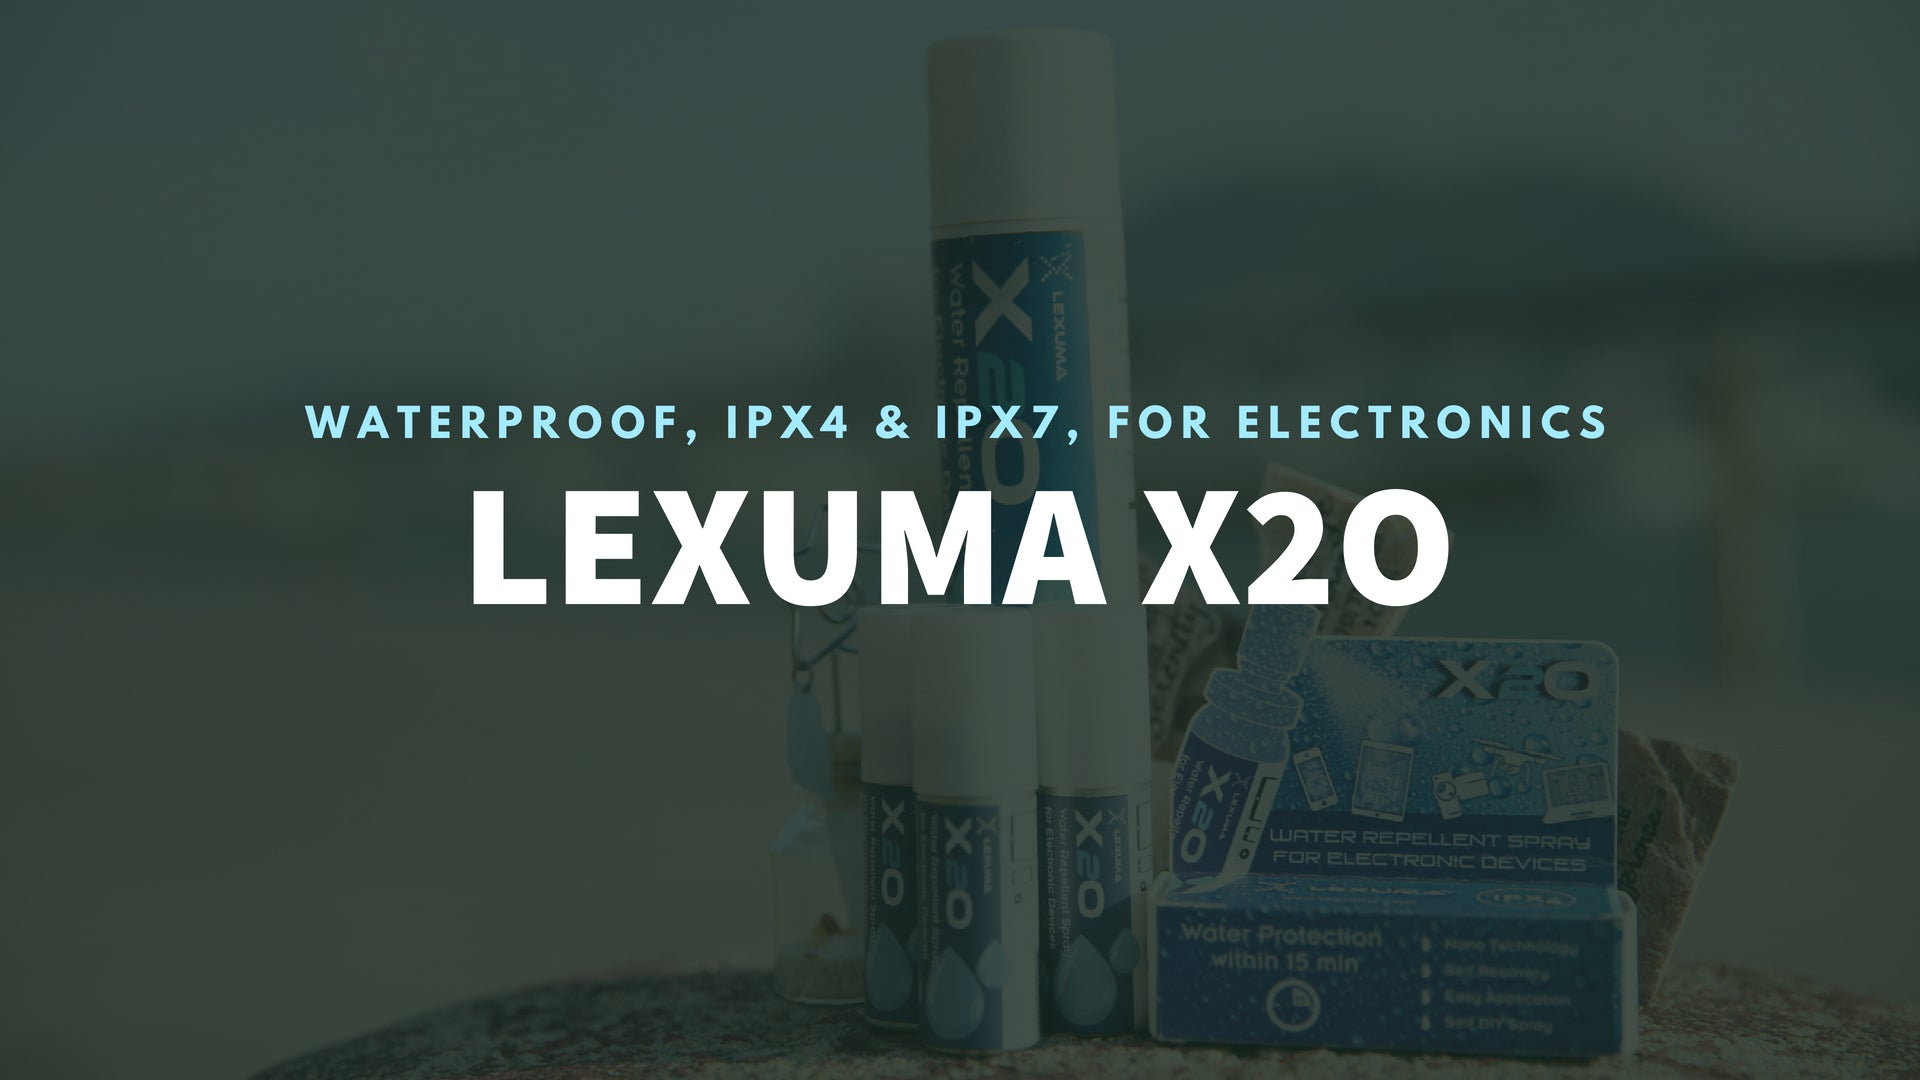 Lexuma 辣數碼防水噴霧 XWP-1100 X2O Water Repellent Spray with IPX4 and IPX7 water protection conformal protective coating electronics pcb waterproofing circuit board sealer gel conformal clear coat for electronics moisture proof pcb waterproof nano spray for electronics devices mobile phone epoxy conformal coating sealant spray moisture proof Machinery Protection banner